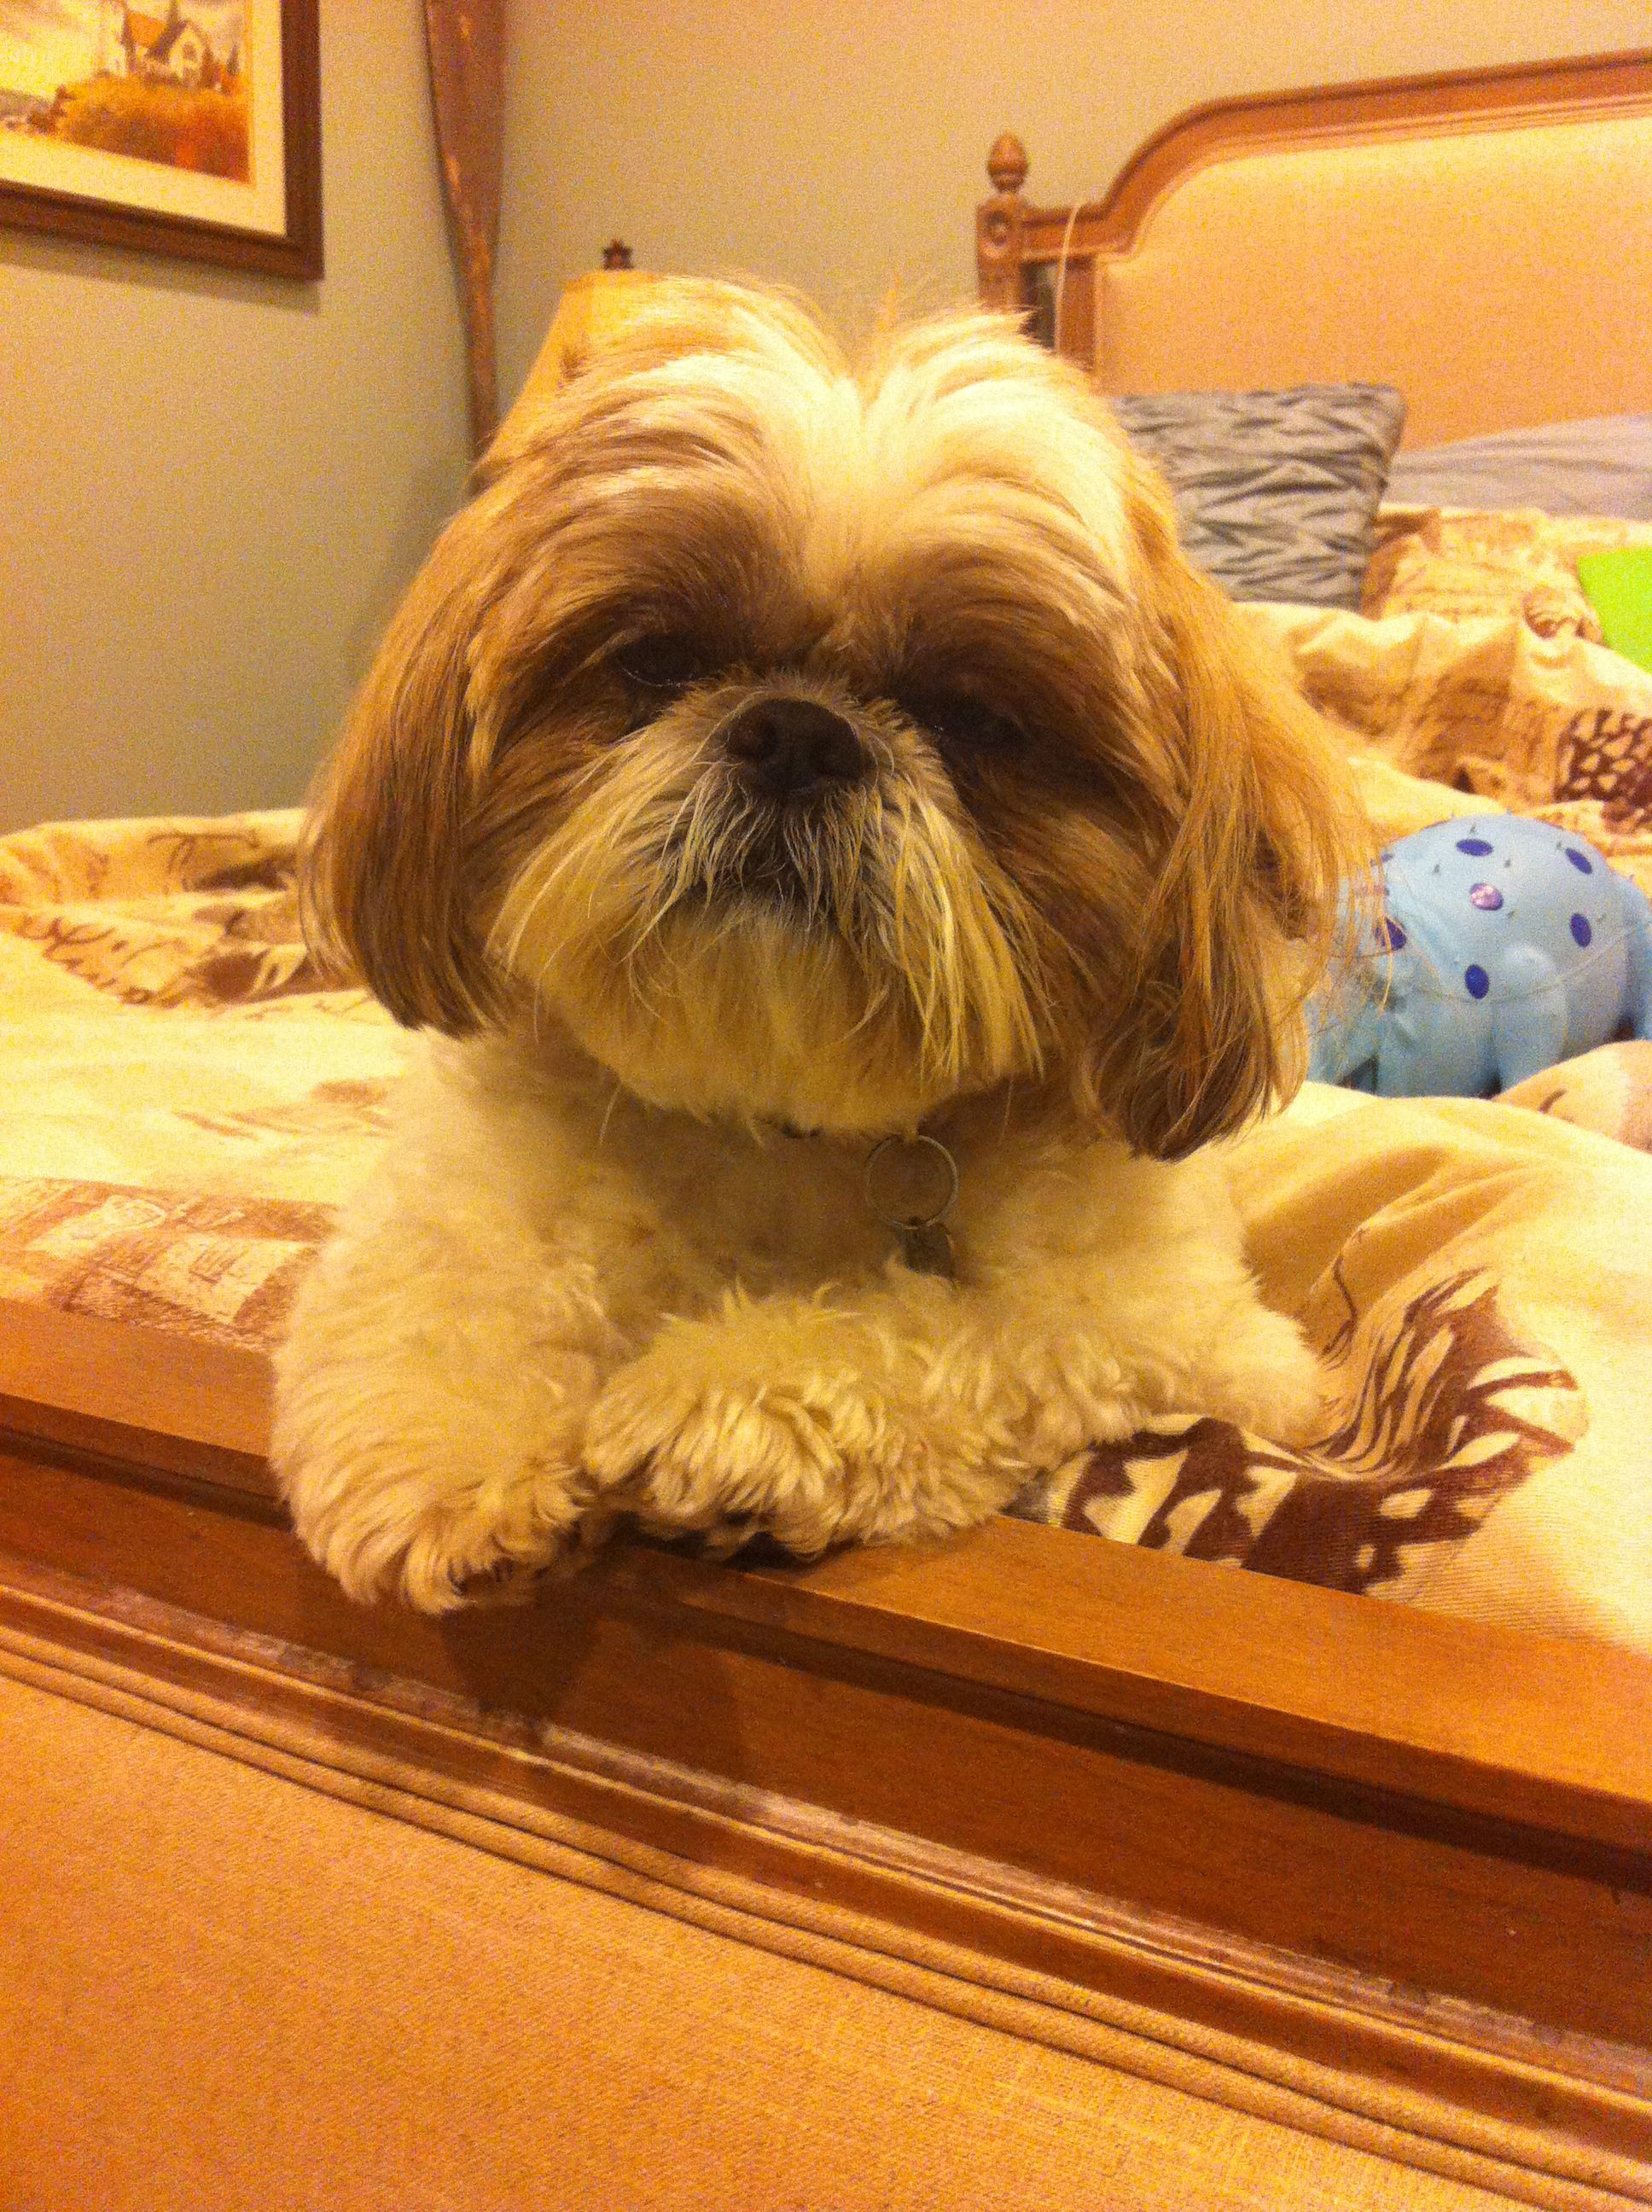 Getting ready for bed. Shih tzu dog, Toy dog breeds